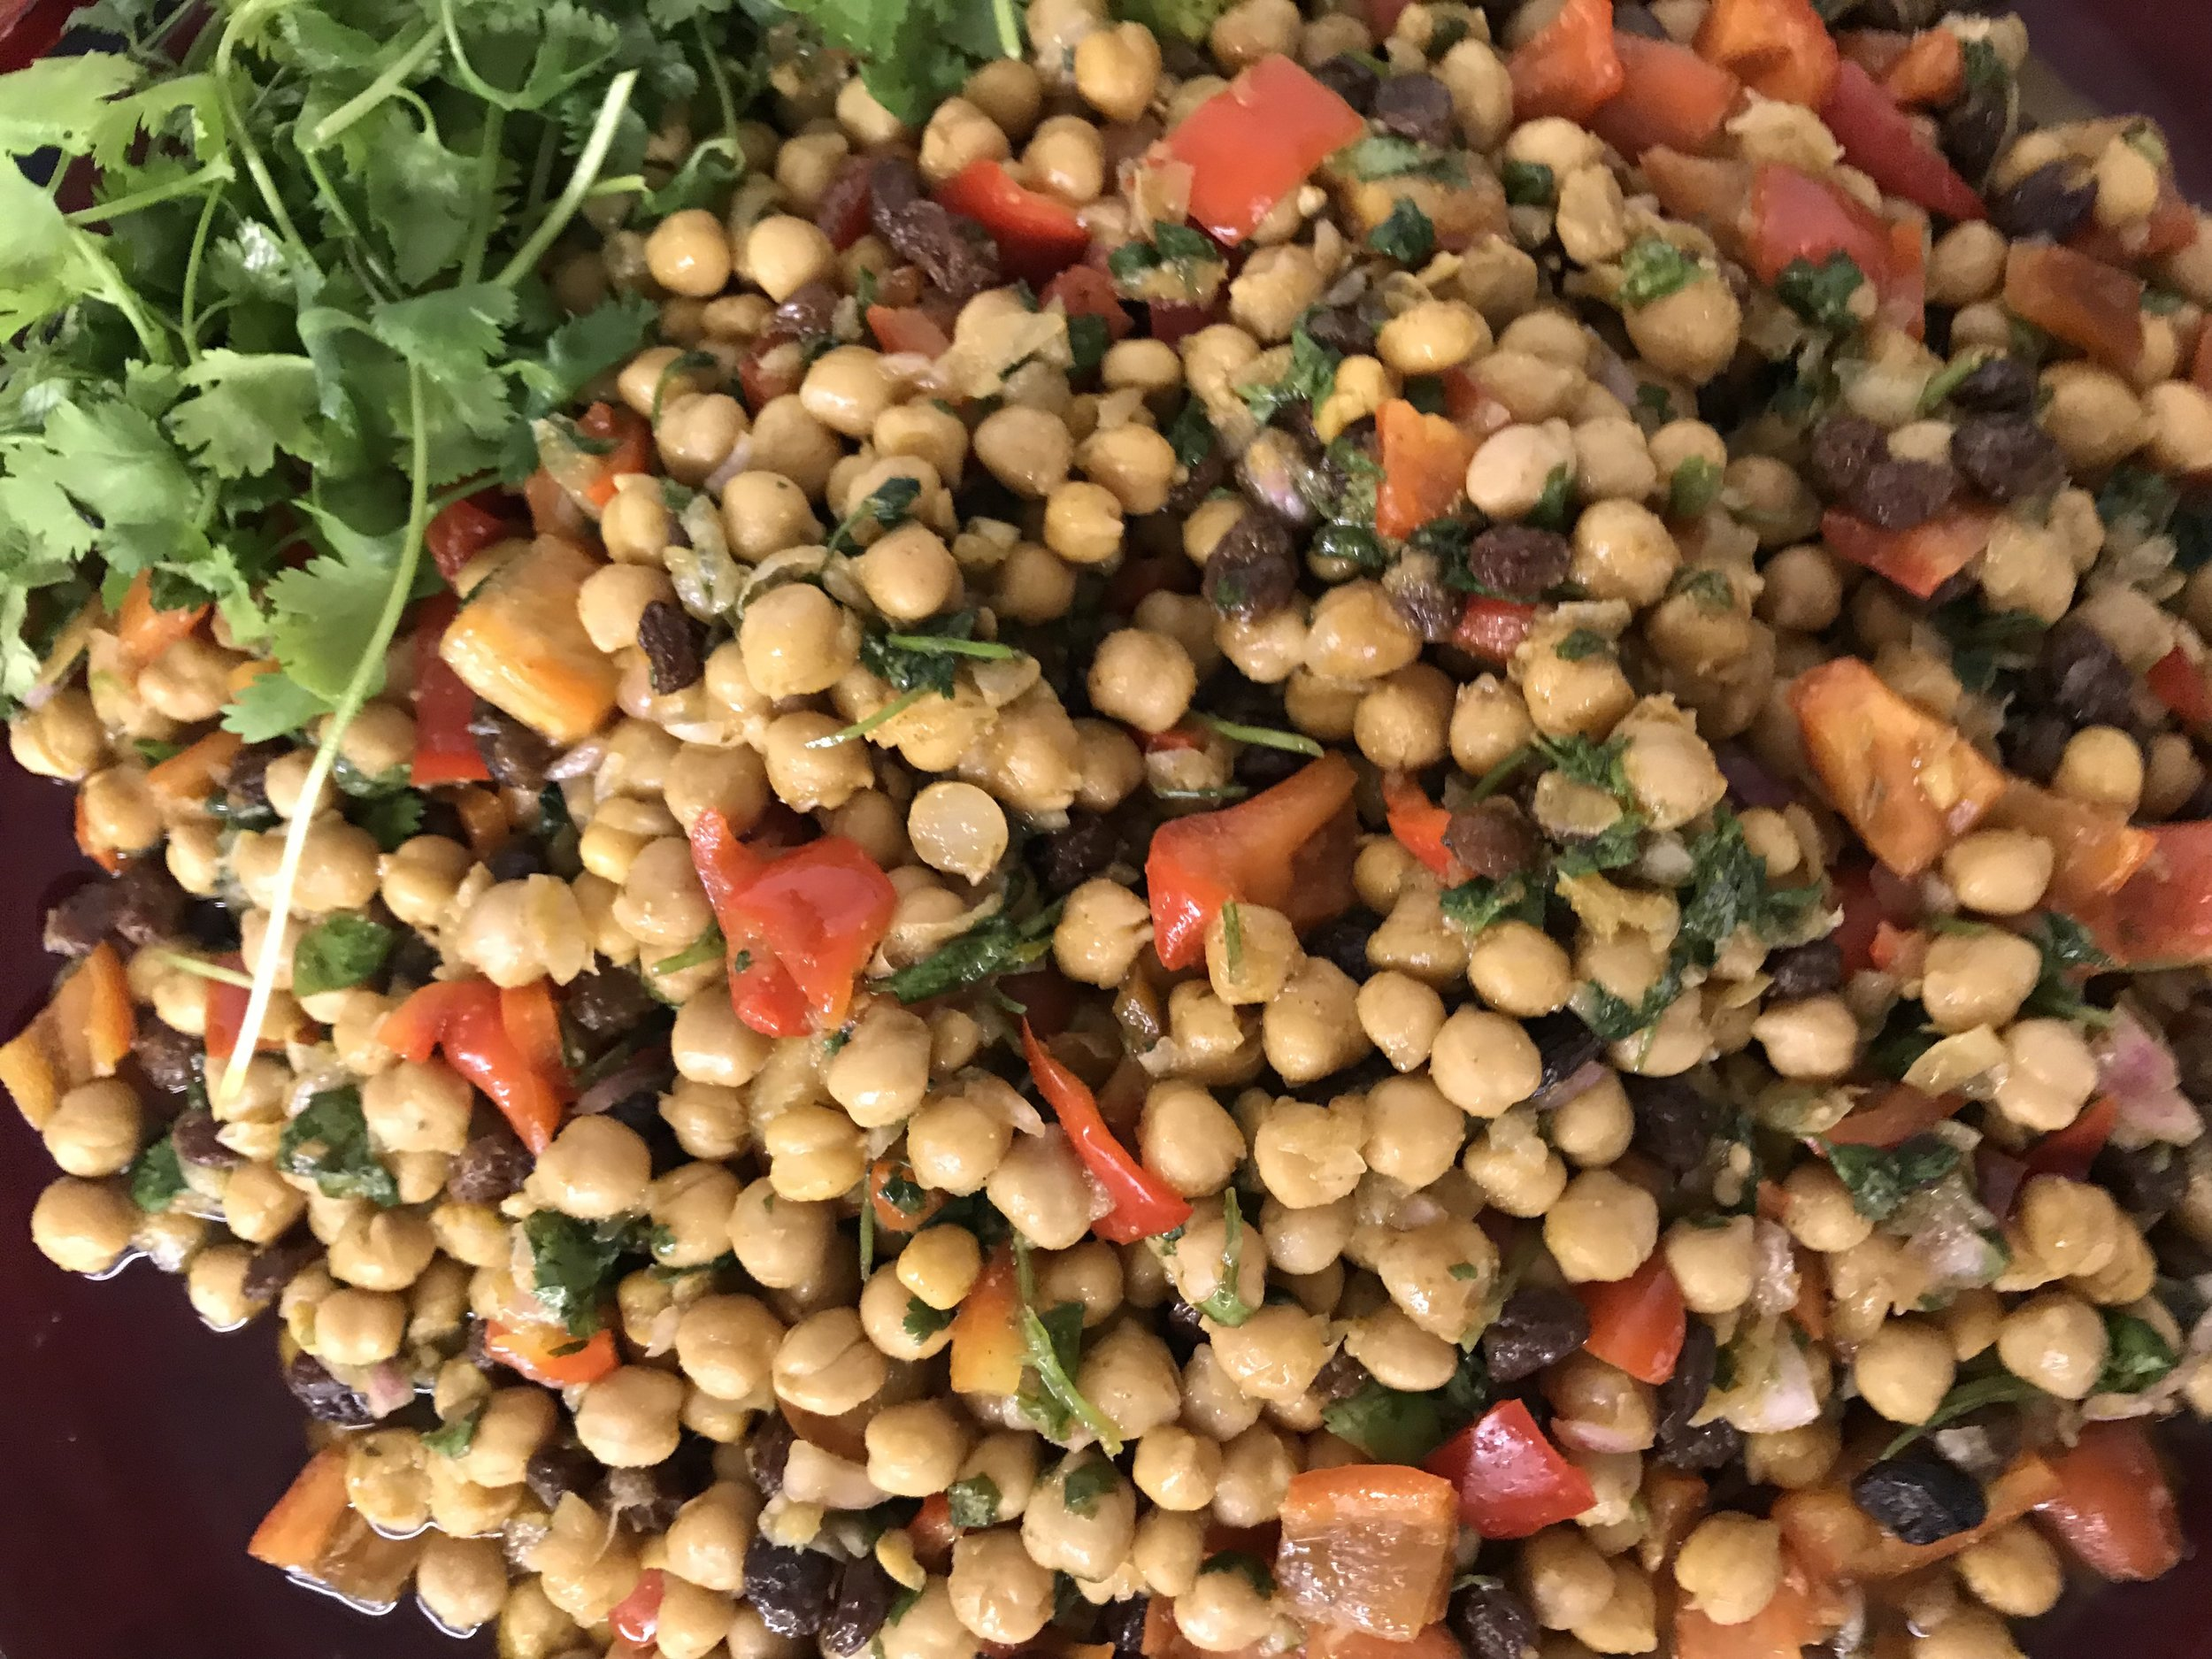 curried chickpea salad - one of our favorites!